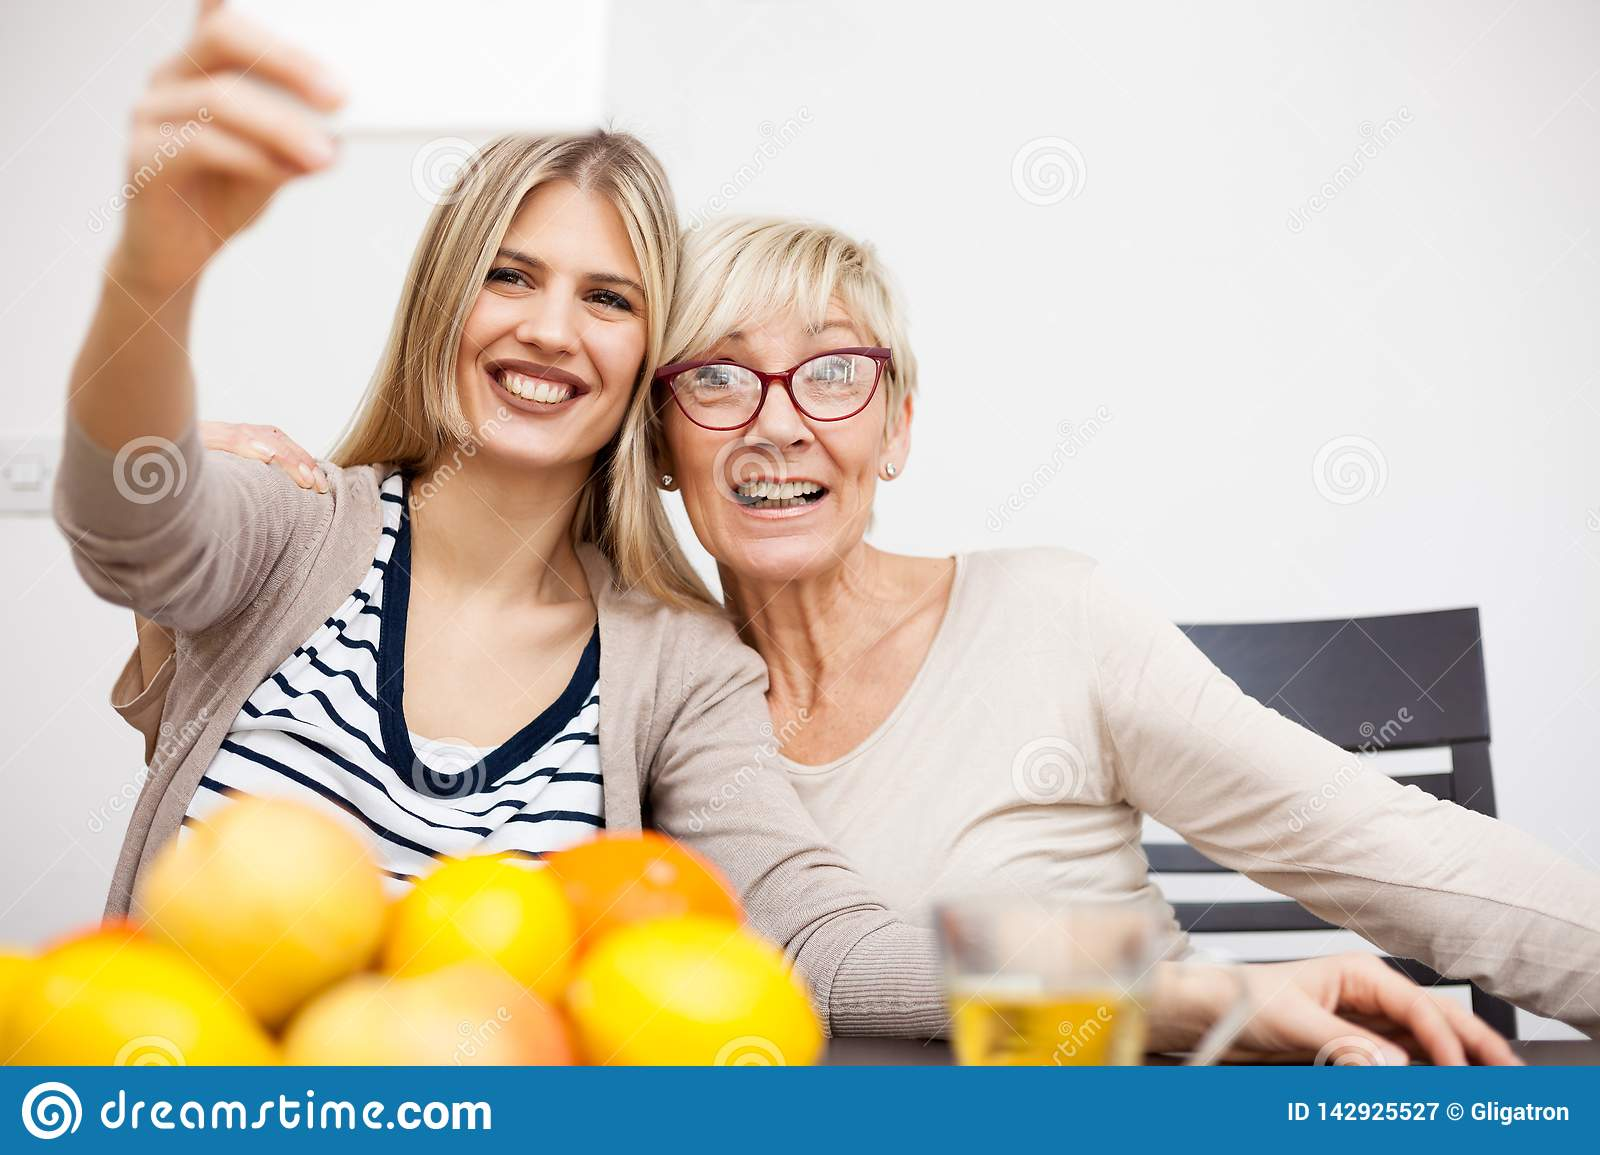 Senior mother and her daughter smiling and taking a selfie while sitting by dinner table in bright room